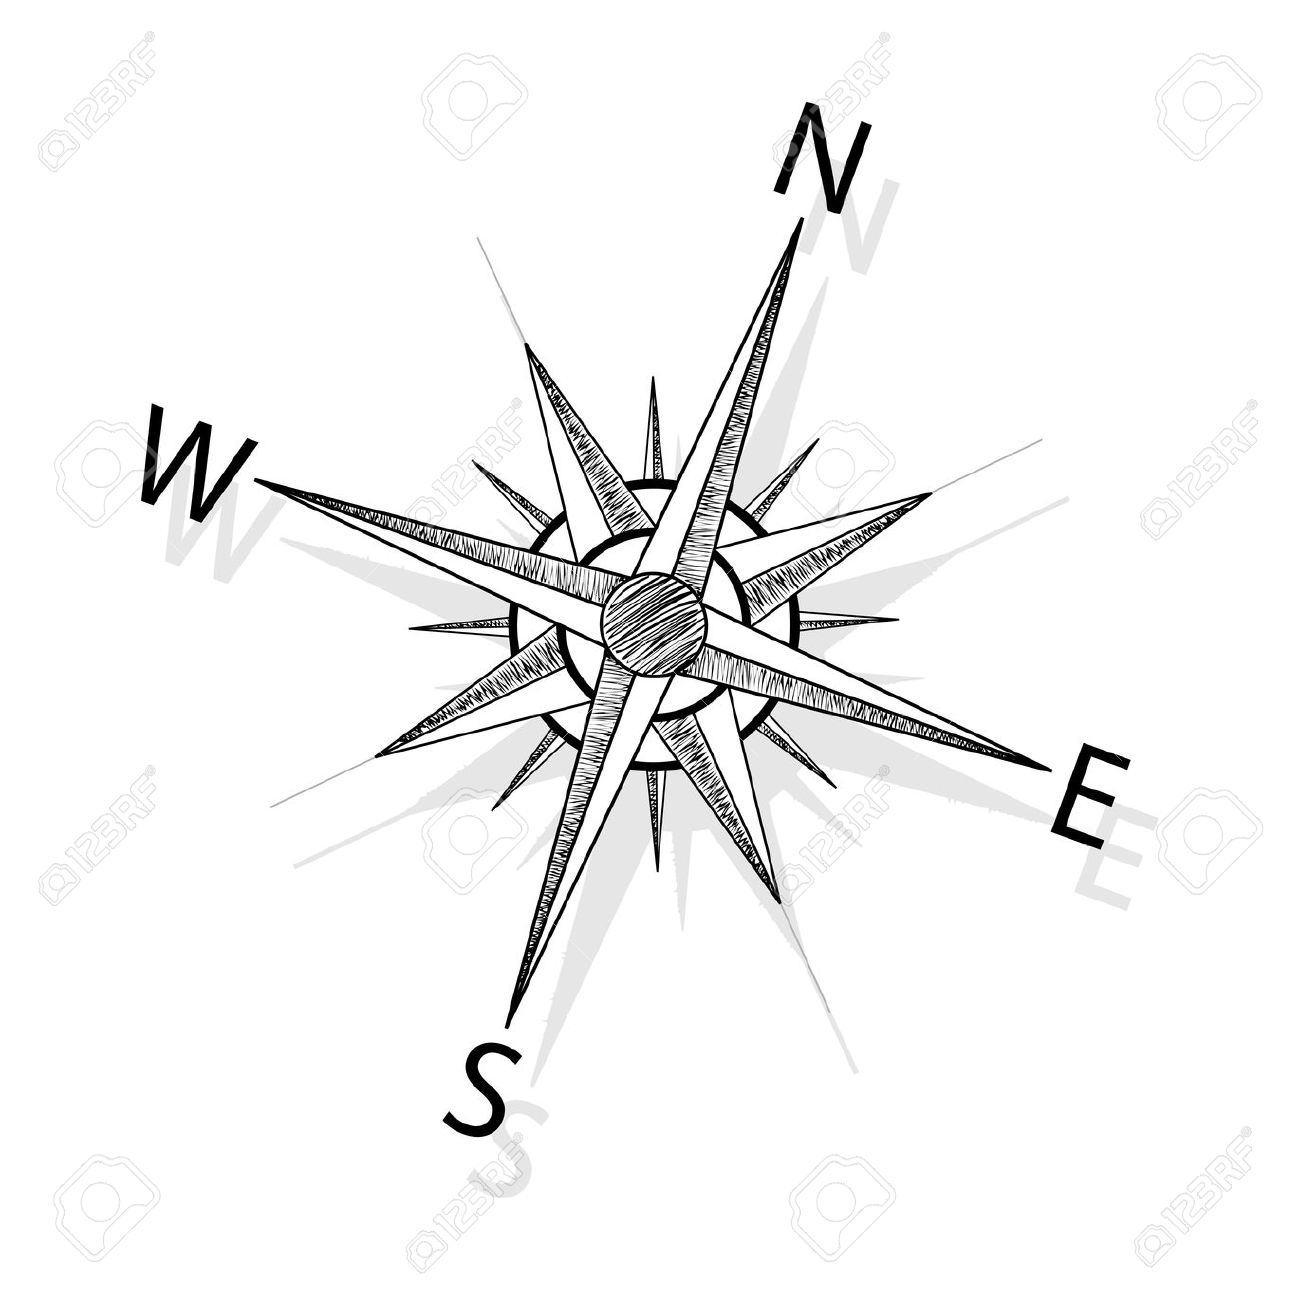 1300x1300 Drawing A Compass Rose Drawings, Compass Rose And Rose Drawings On